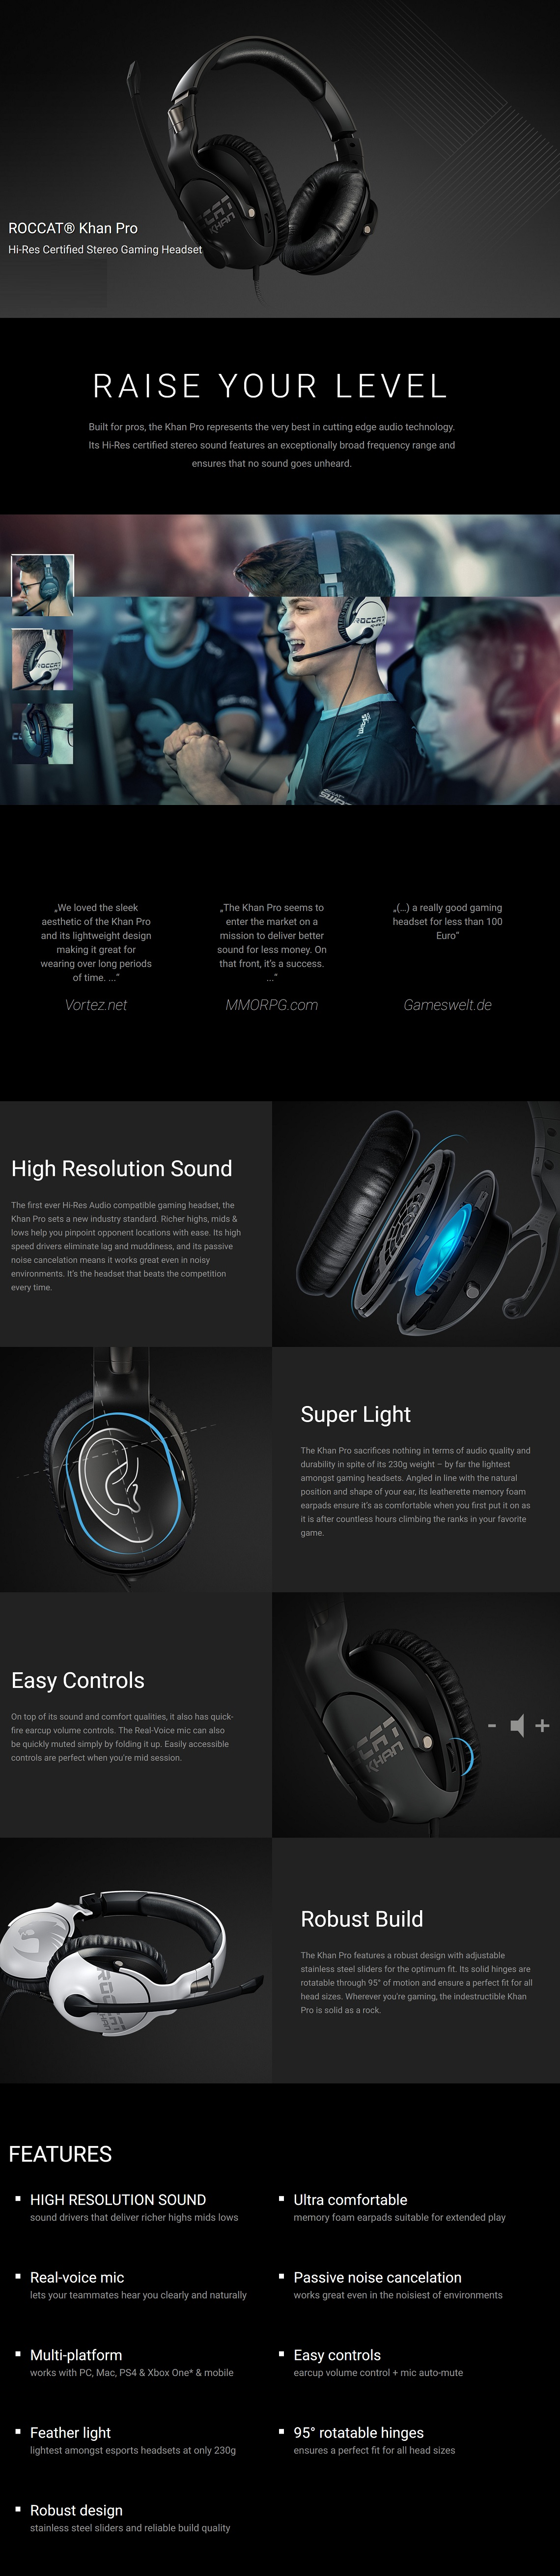 Roccat Khan PRO Competitive High Resolution Gaming Headset Black Hi-Res Certified